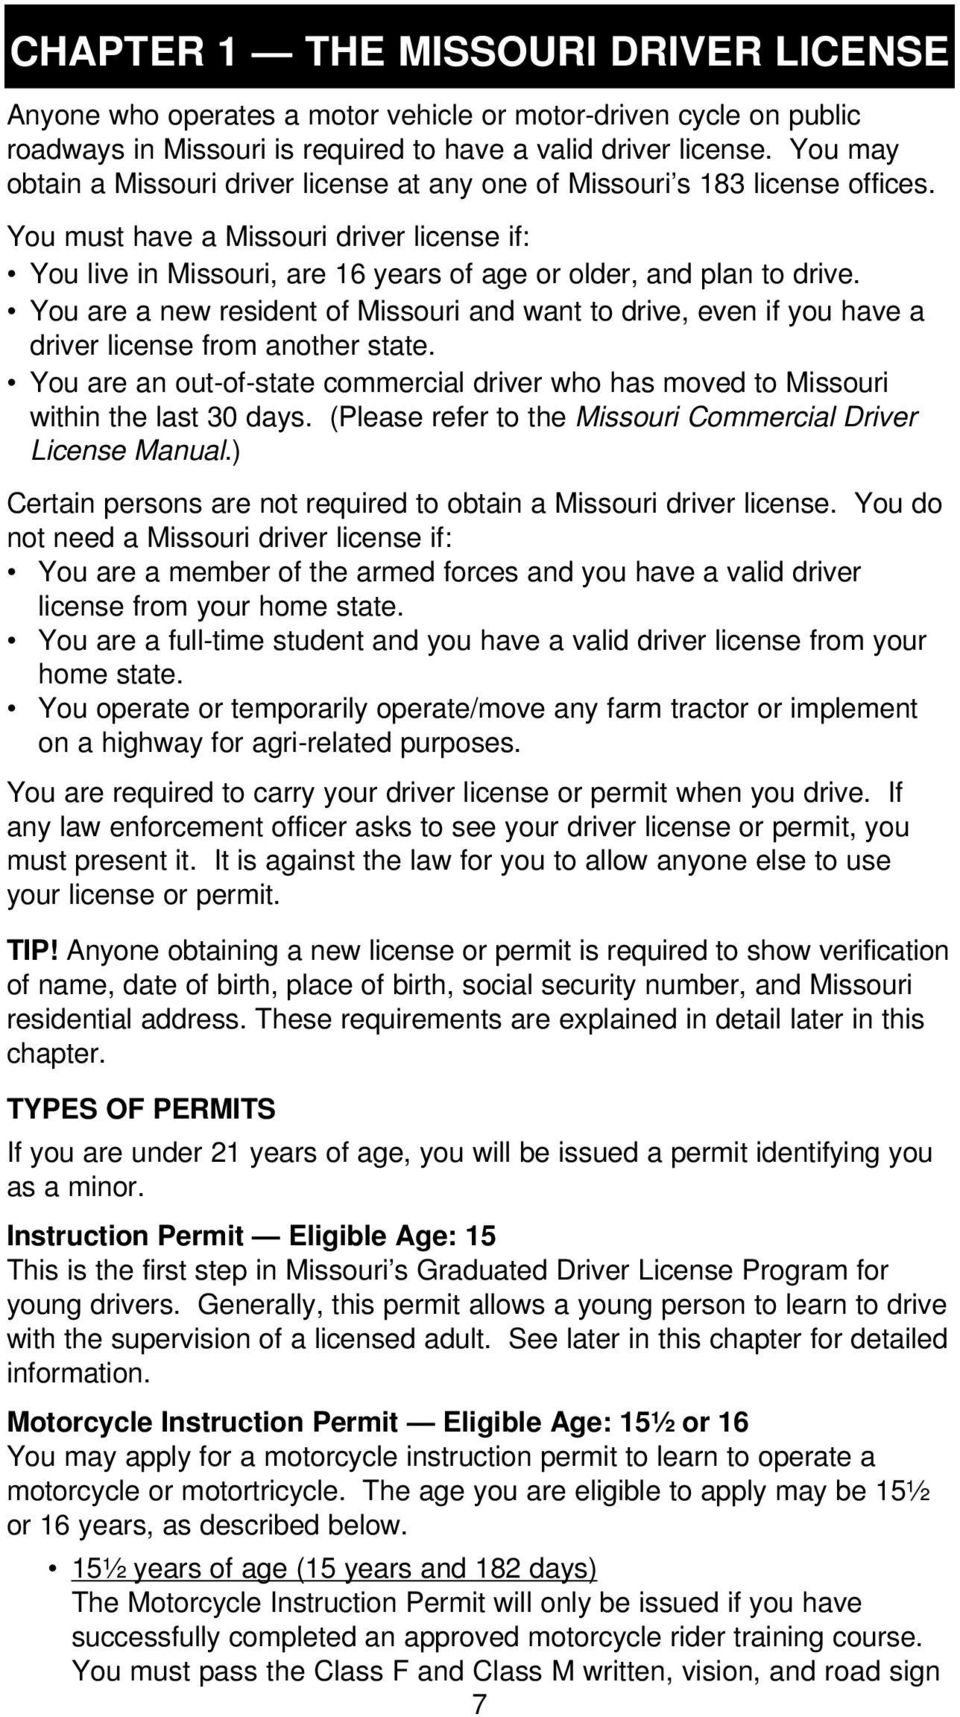 You must have a Missouri driver license if: You live in Missouri, are 16 years of age or older, and plan to drive.